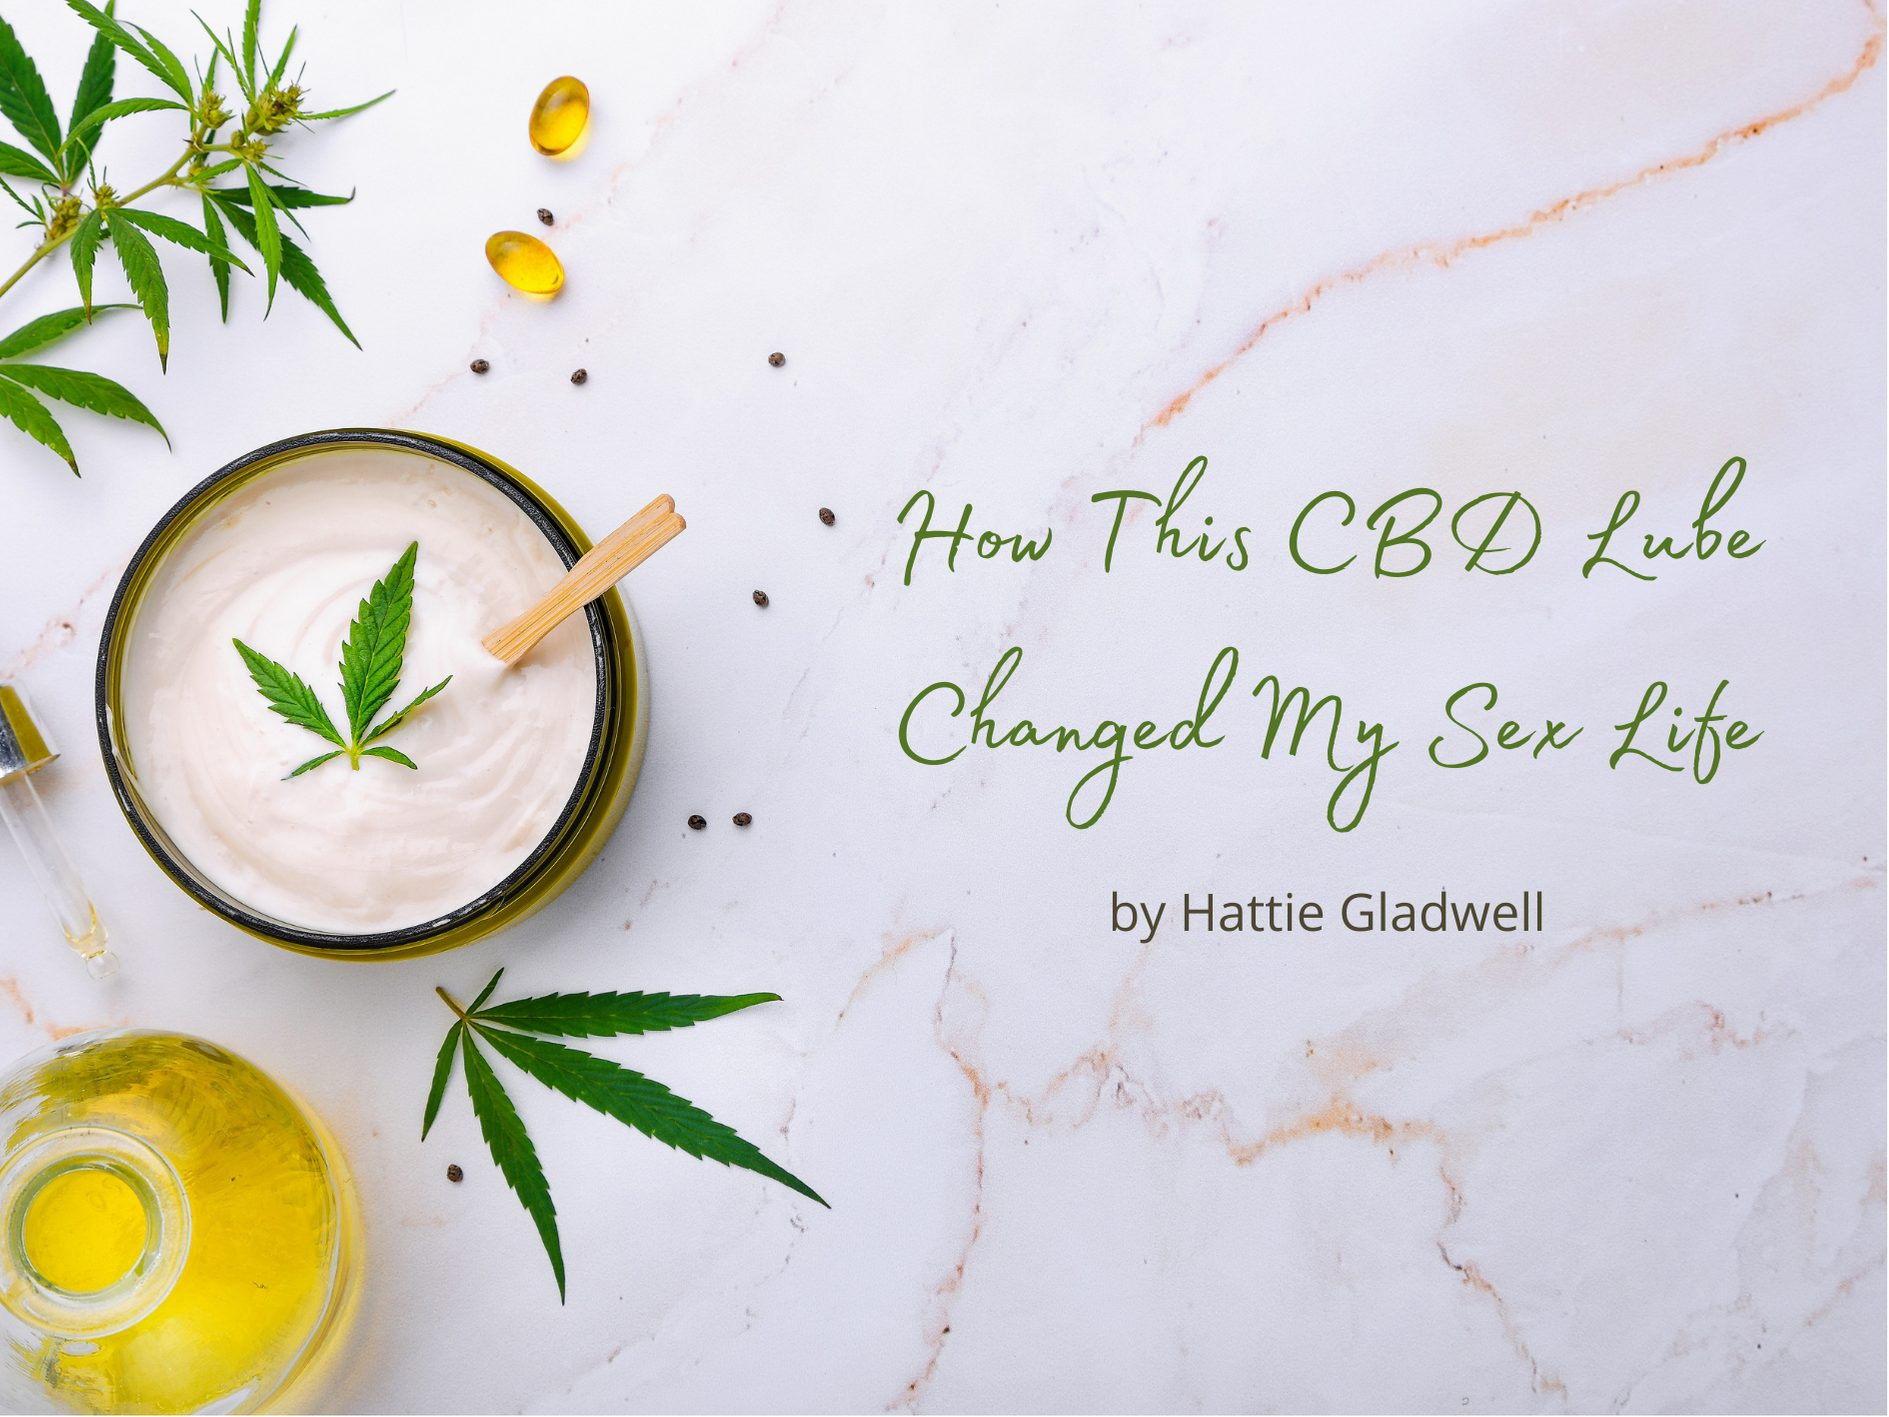 [Guest Post] How CBD Lube Changed My Sex Life When My Body Forgot How to Orgasm by Hattie Gladwell